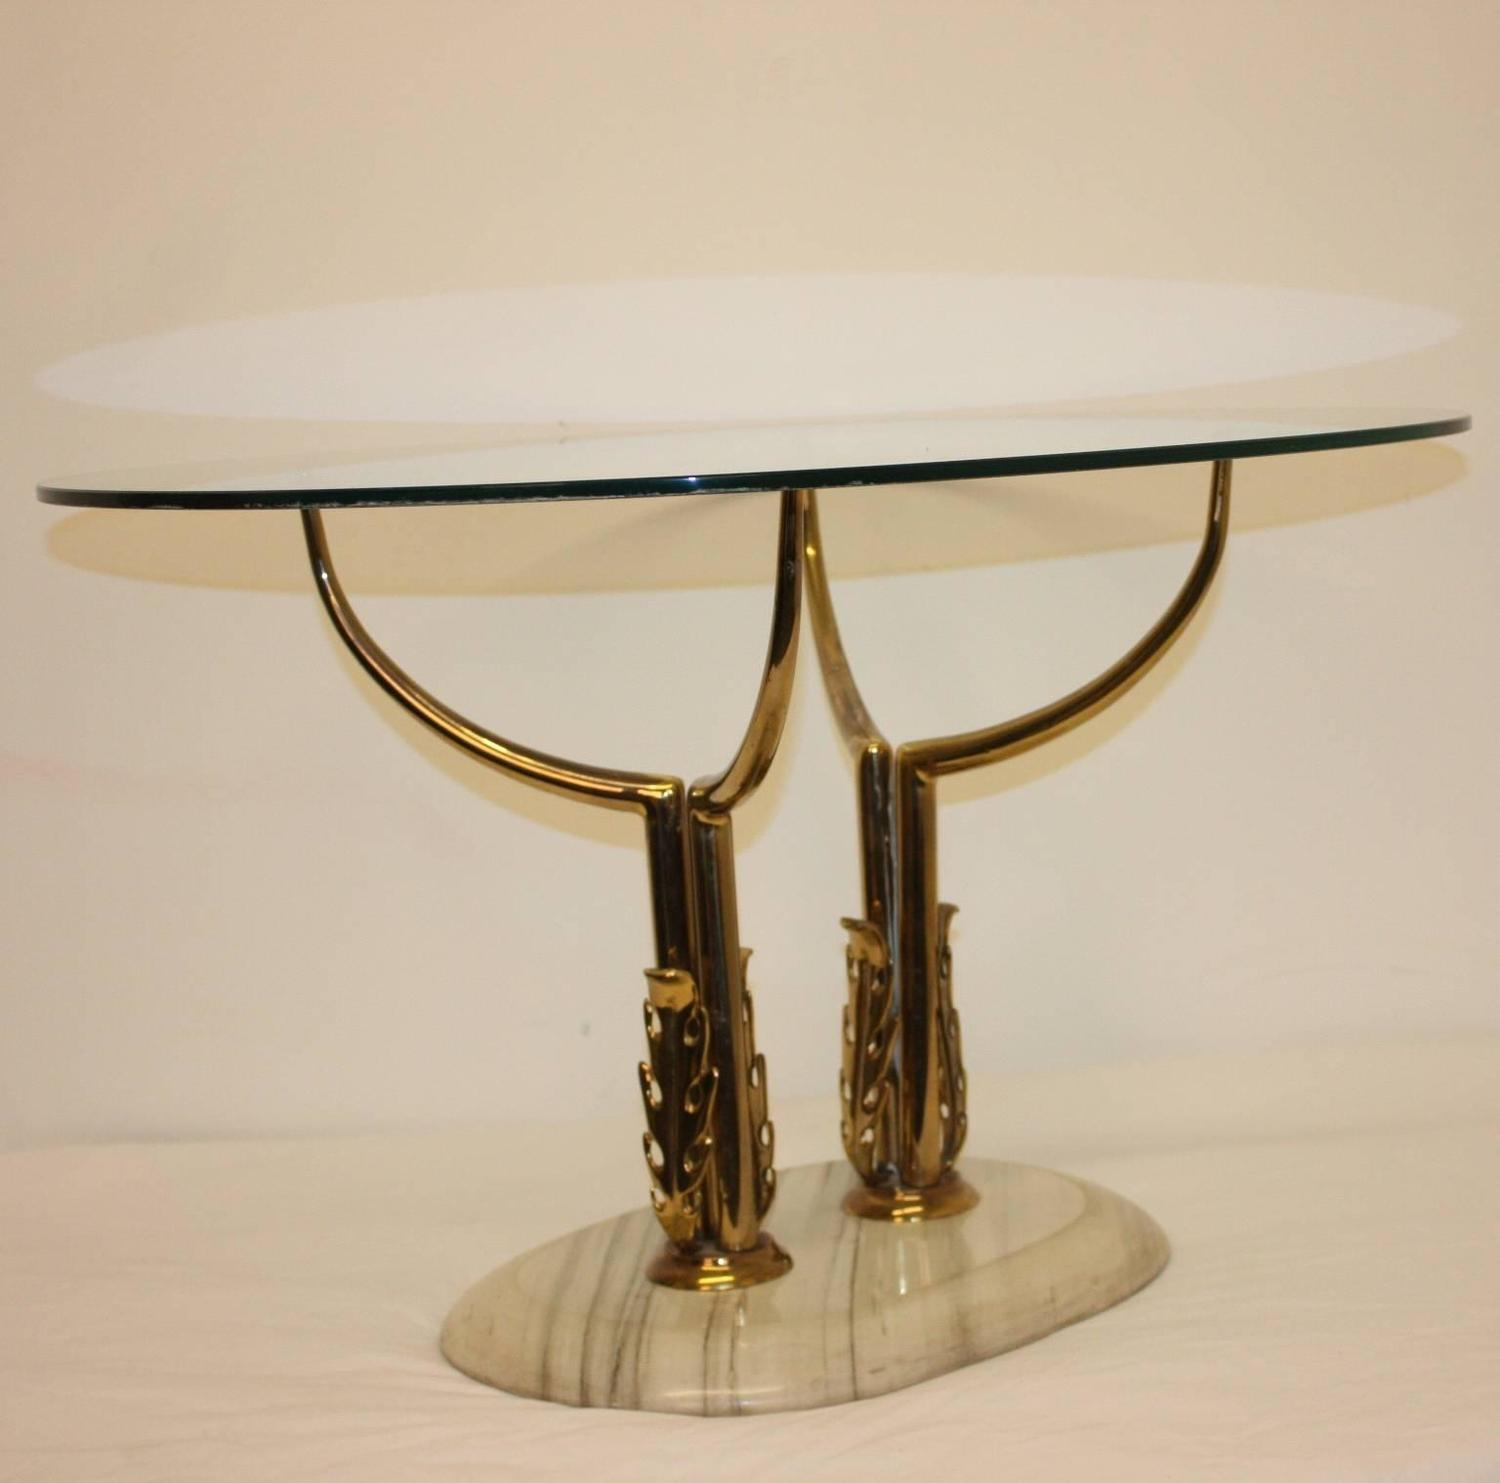 1960s Italian Brass, Marble And Glass Coffee Table At 1stdibs